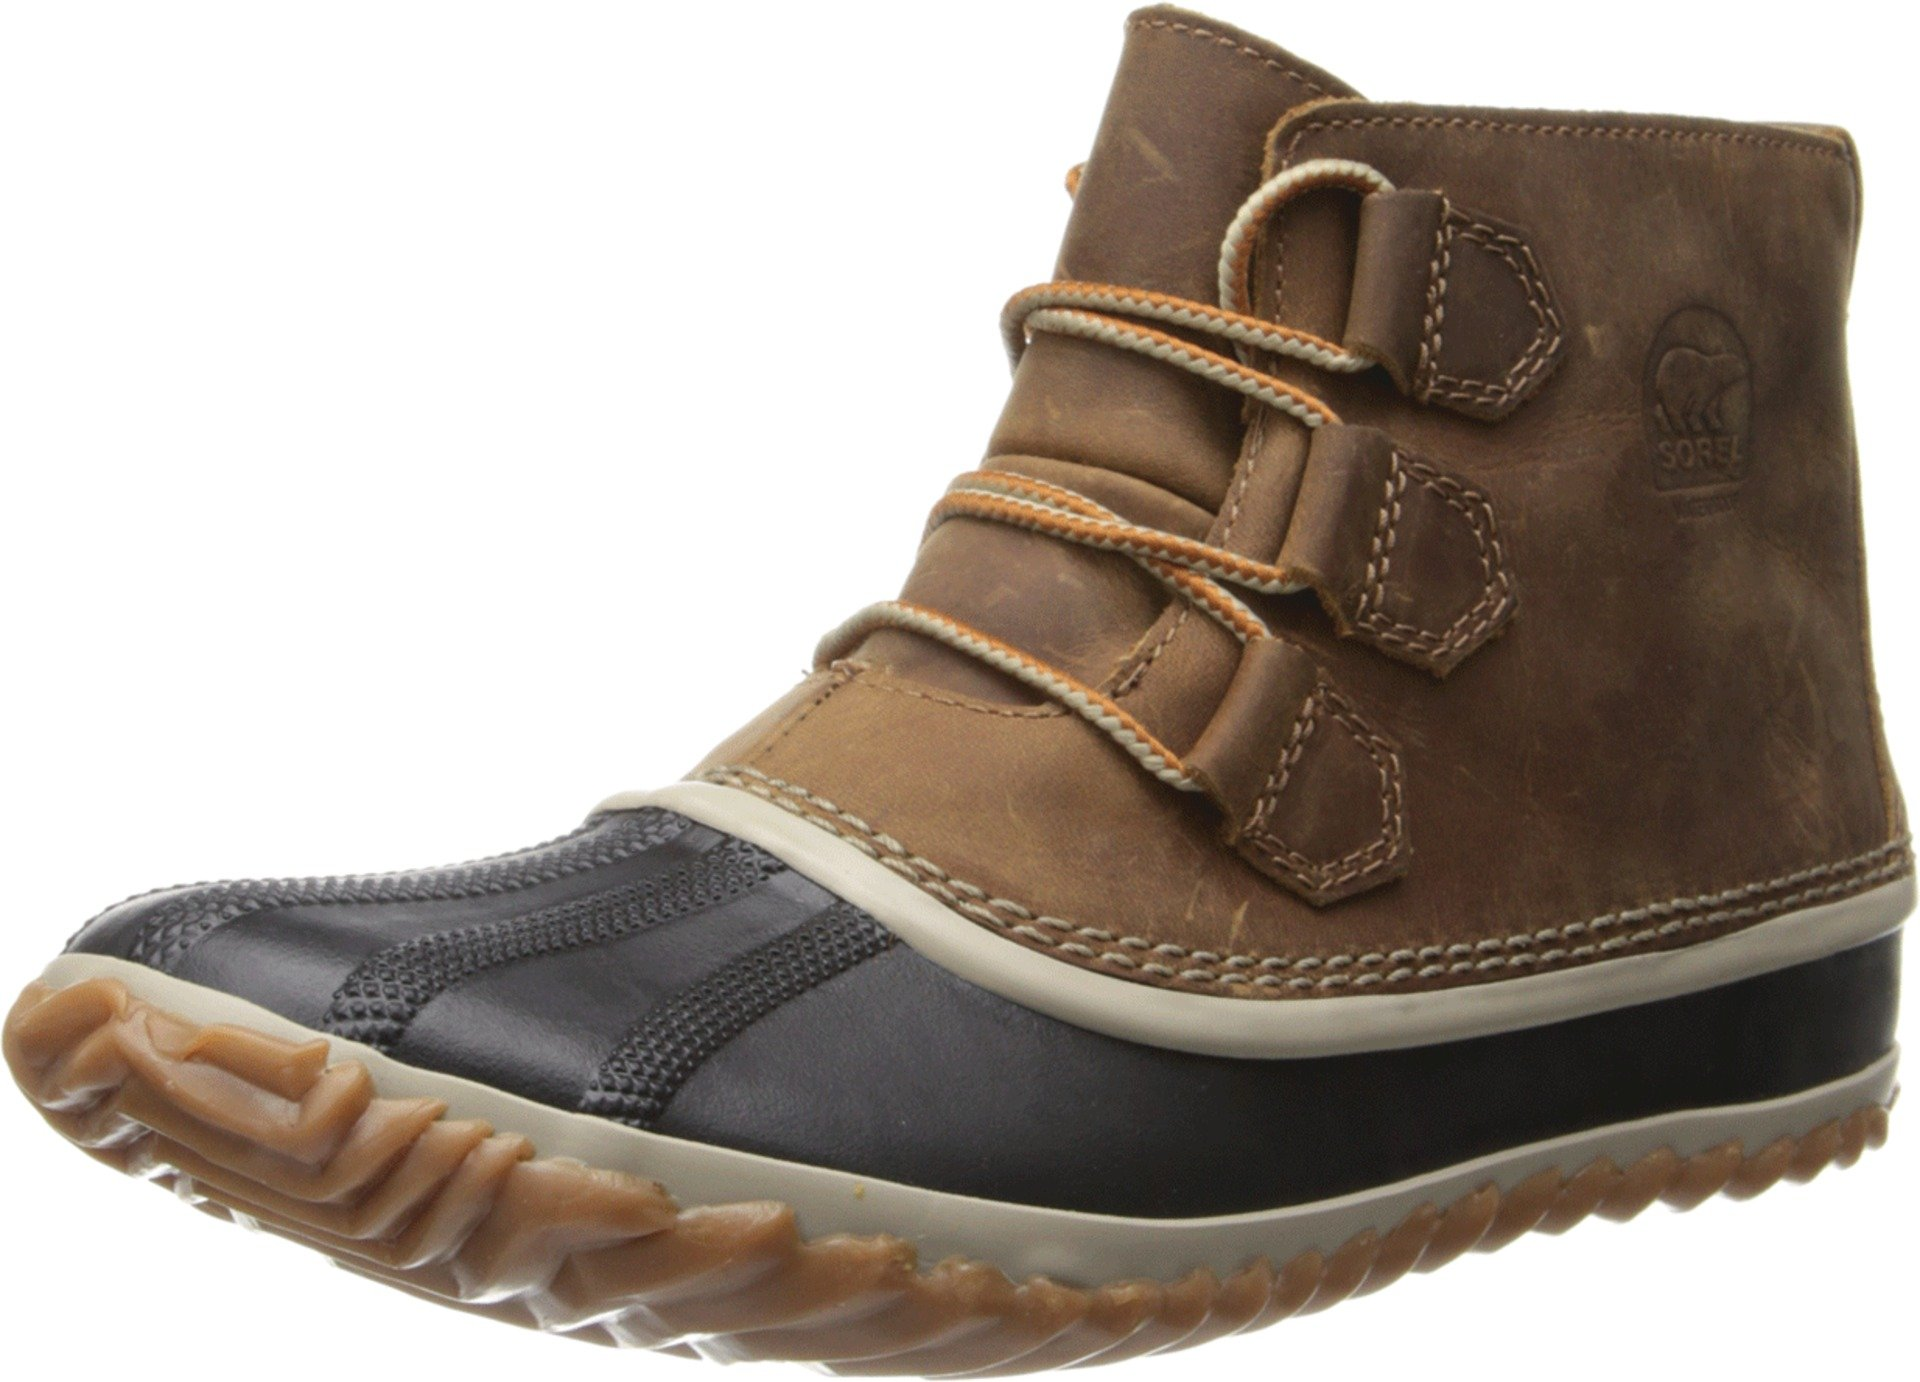 Sorel Women's Out N about Leather Snow Boot,Elk,9.5 M US